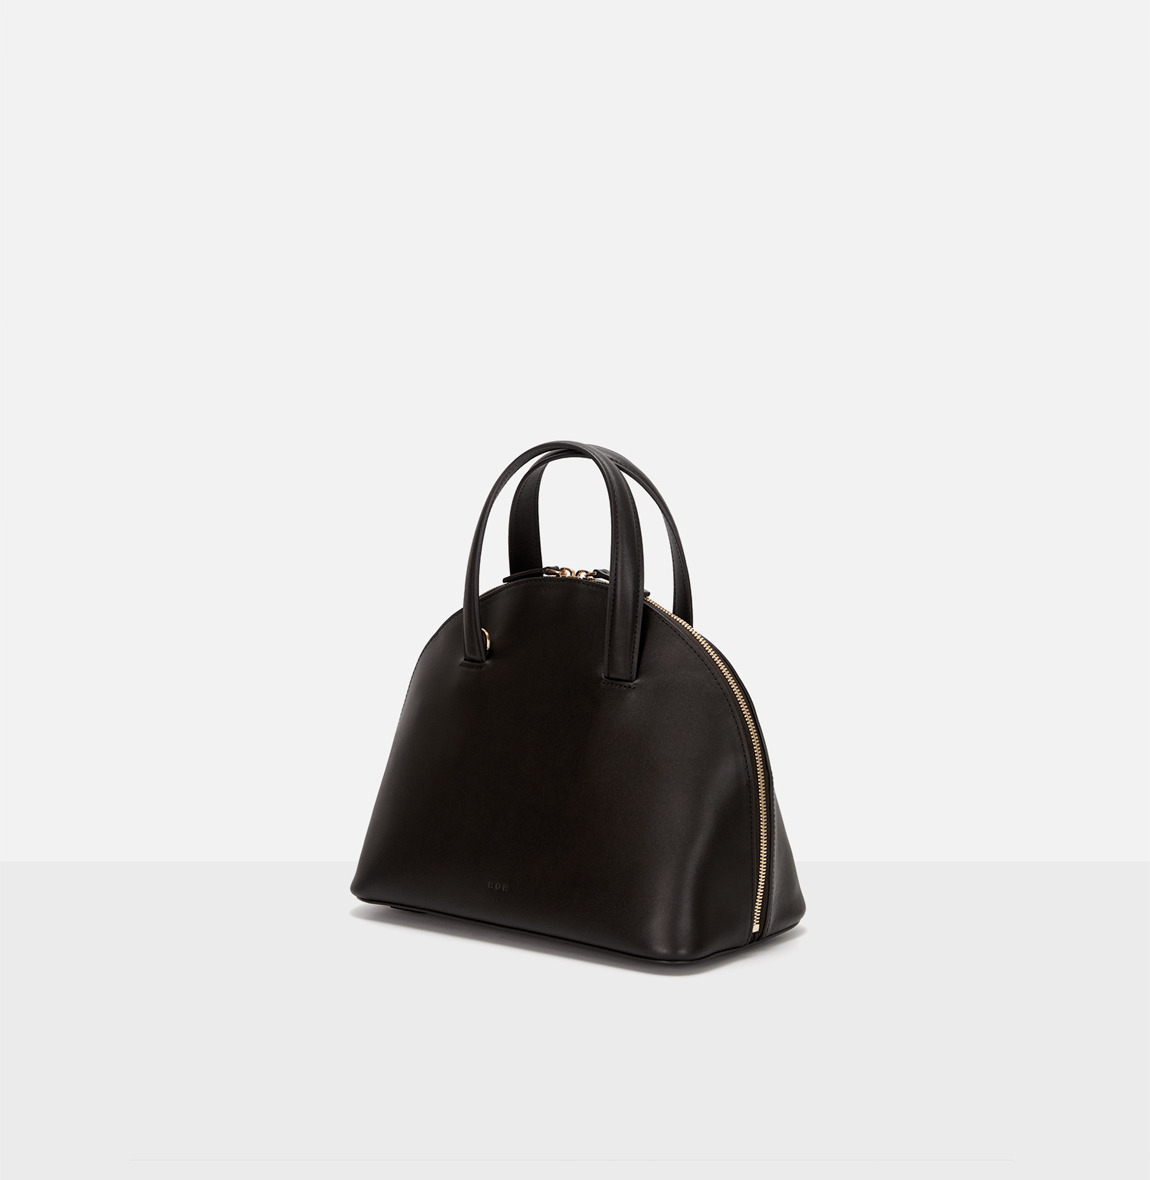 [19FW NEW] Cloche medium tote bag Umber